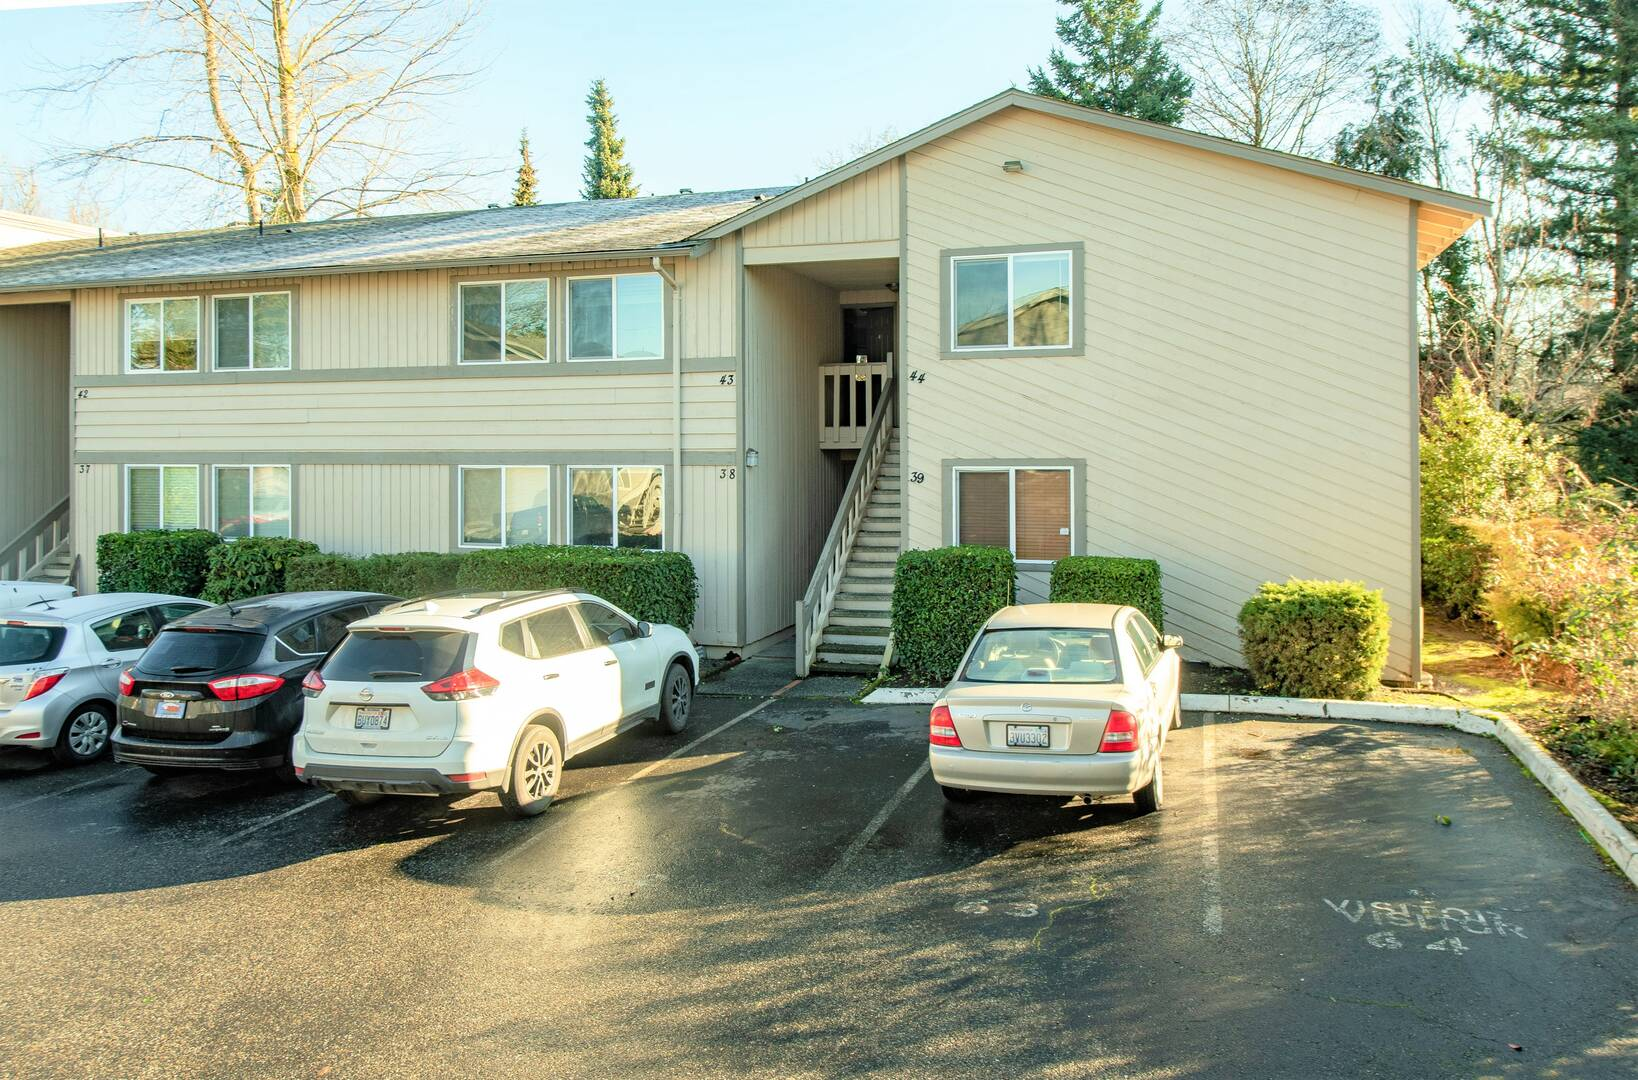 3538 Northwest Ave #43 Bellingham, WA 98225